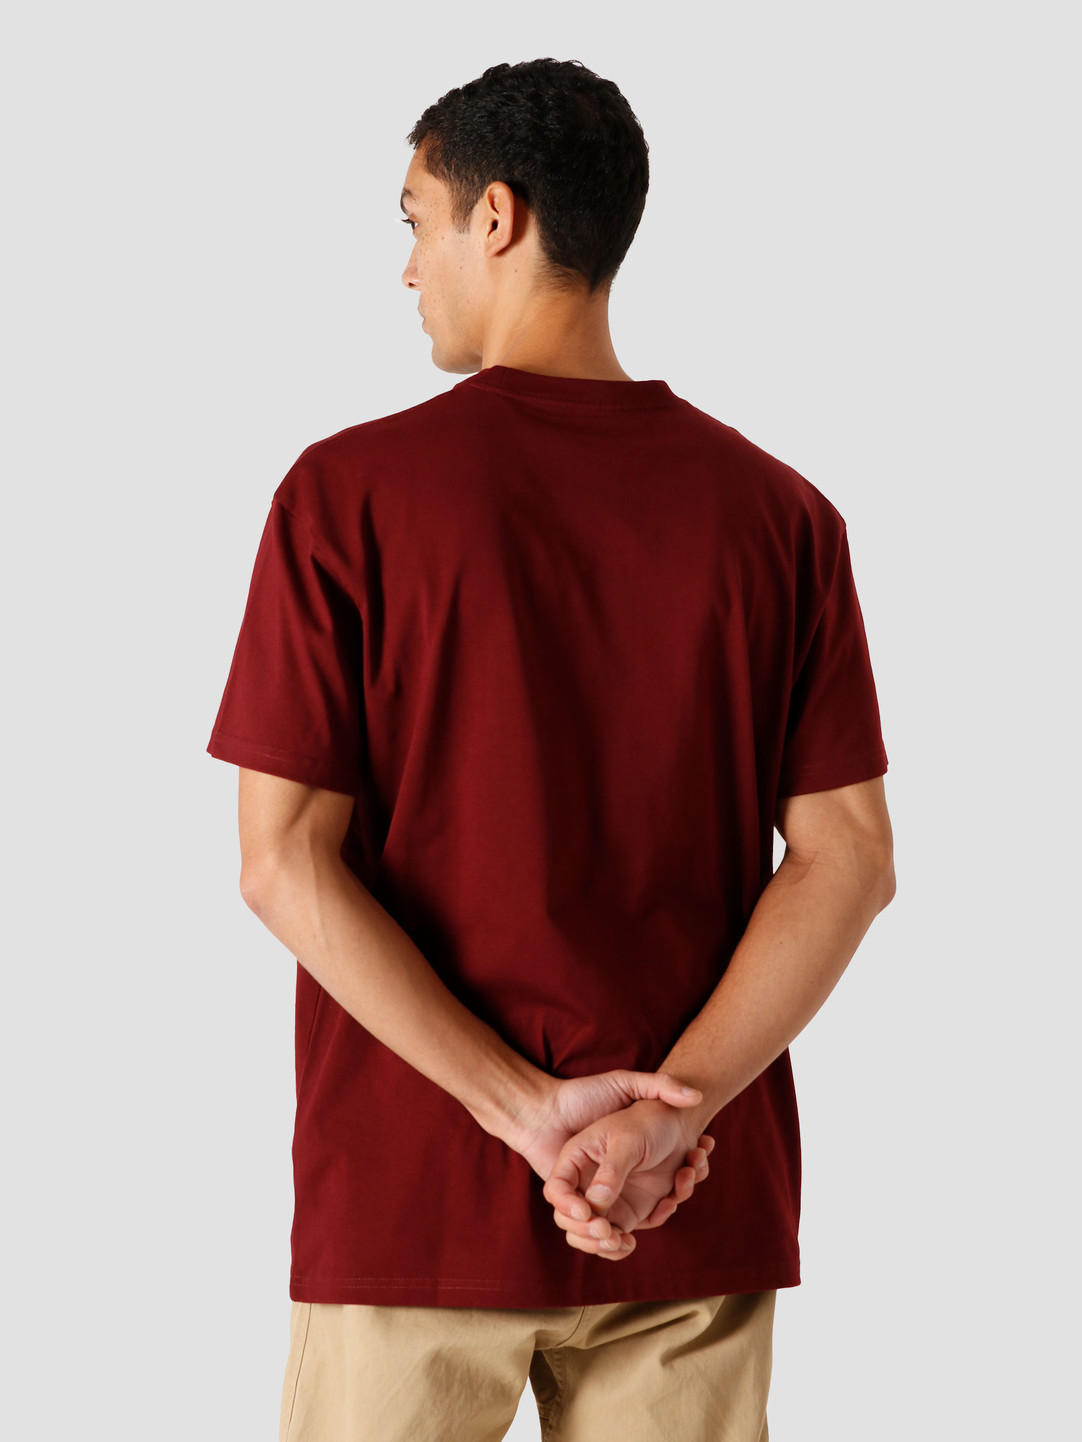 Carhartt WIP Carhartt WIP Chase T-Shirt Bordeaux Gold I026391-JD90